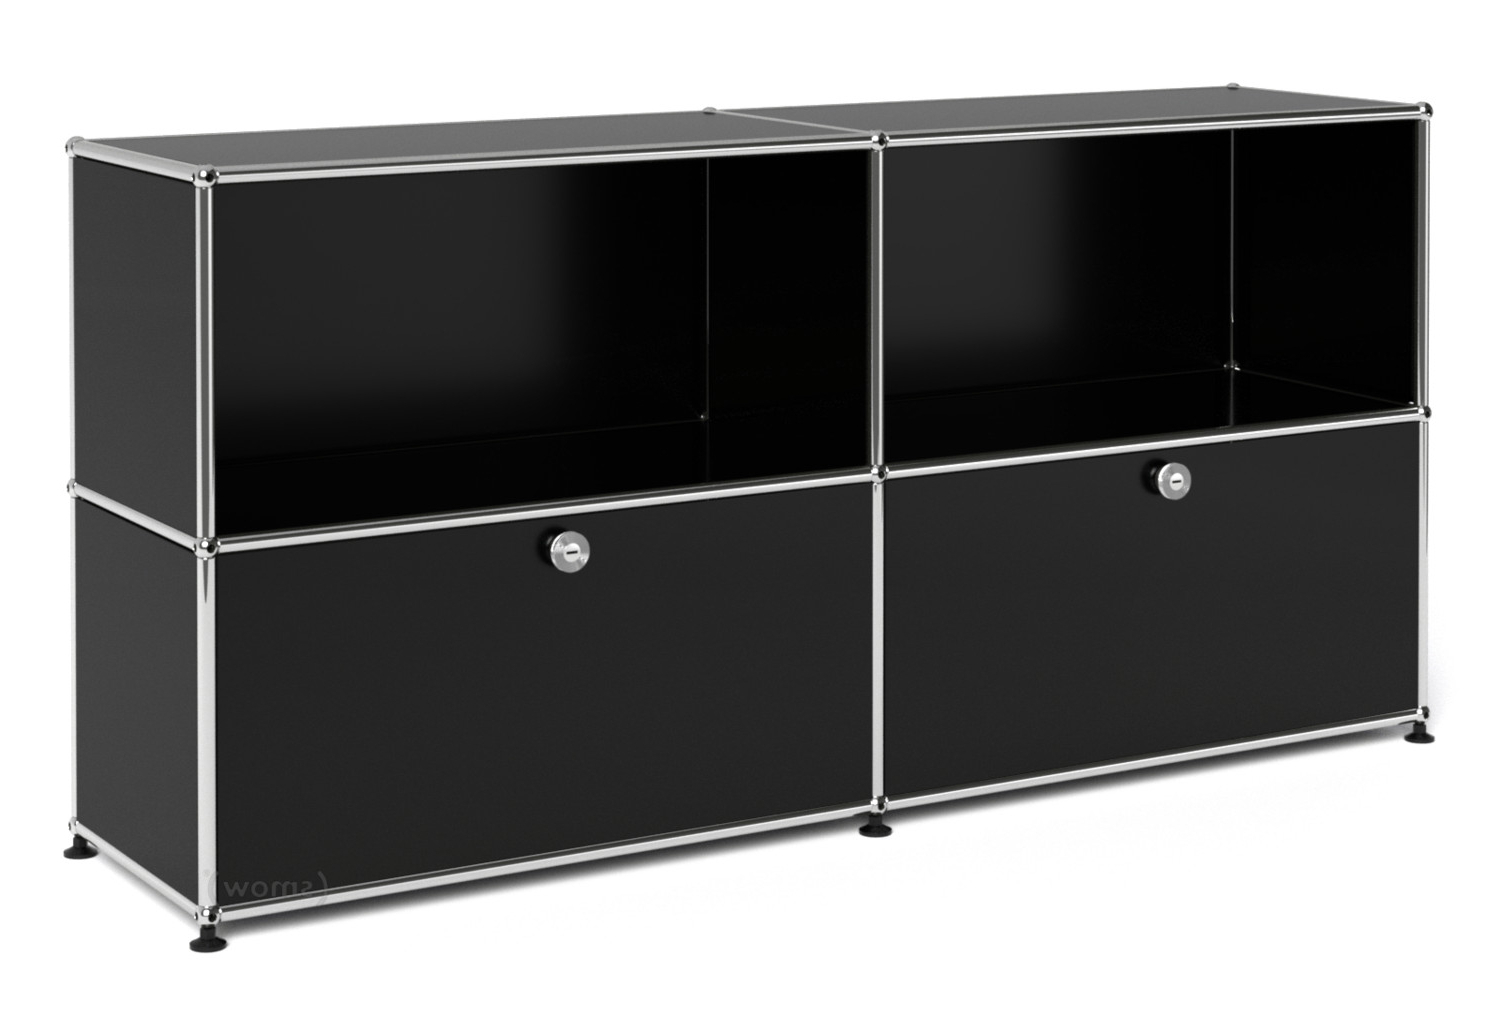 Well Known Usm Haller Sideboard L With 2 Drop Down Doorsfritz Haller & Paul Pertaining To Square Brass 4 Door Sideboards (View 15 of 20)